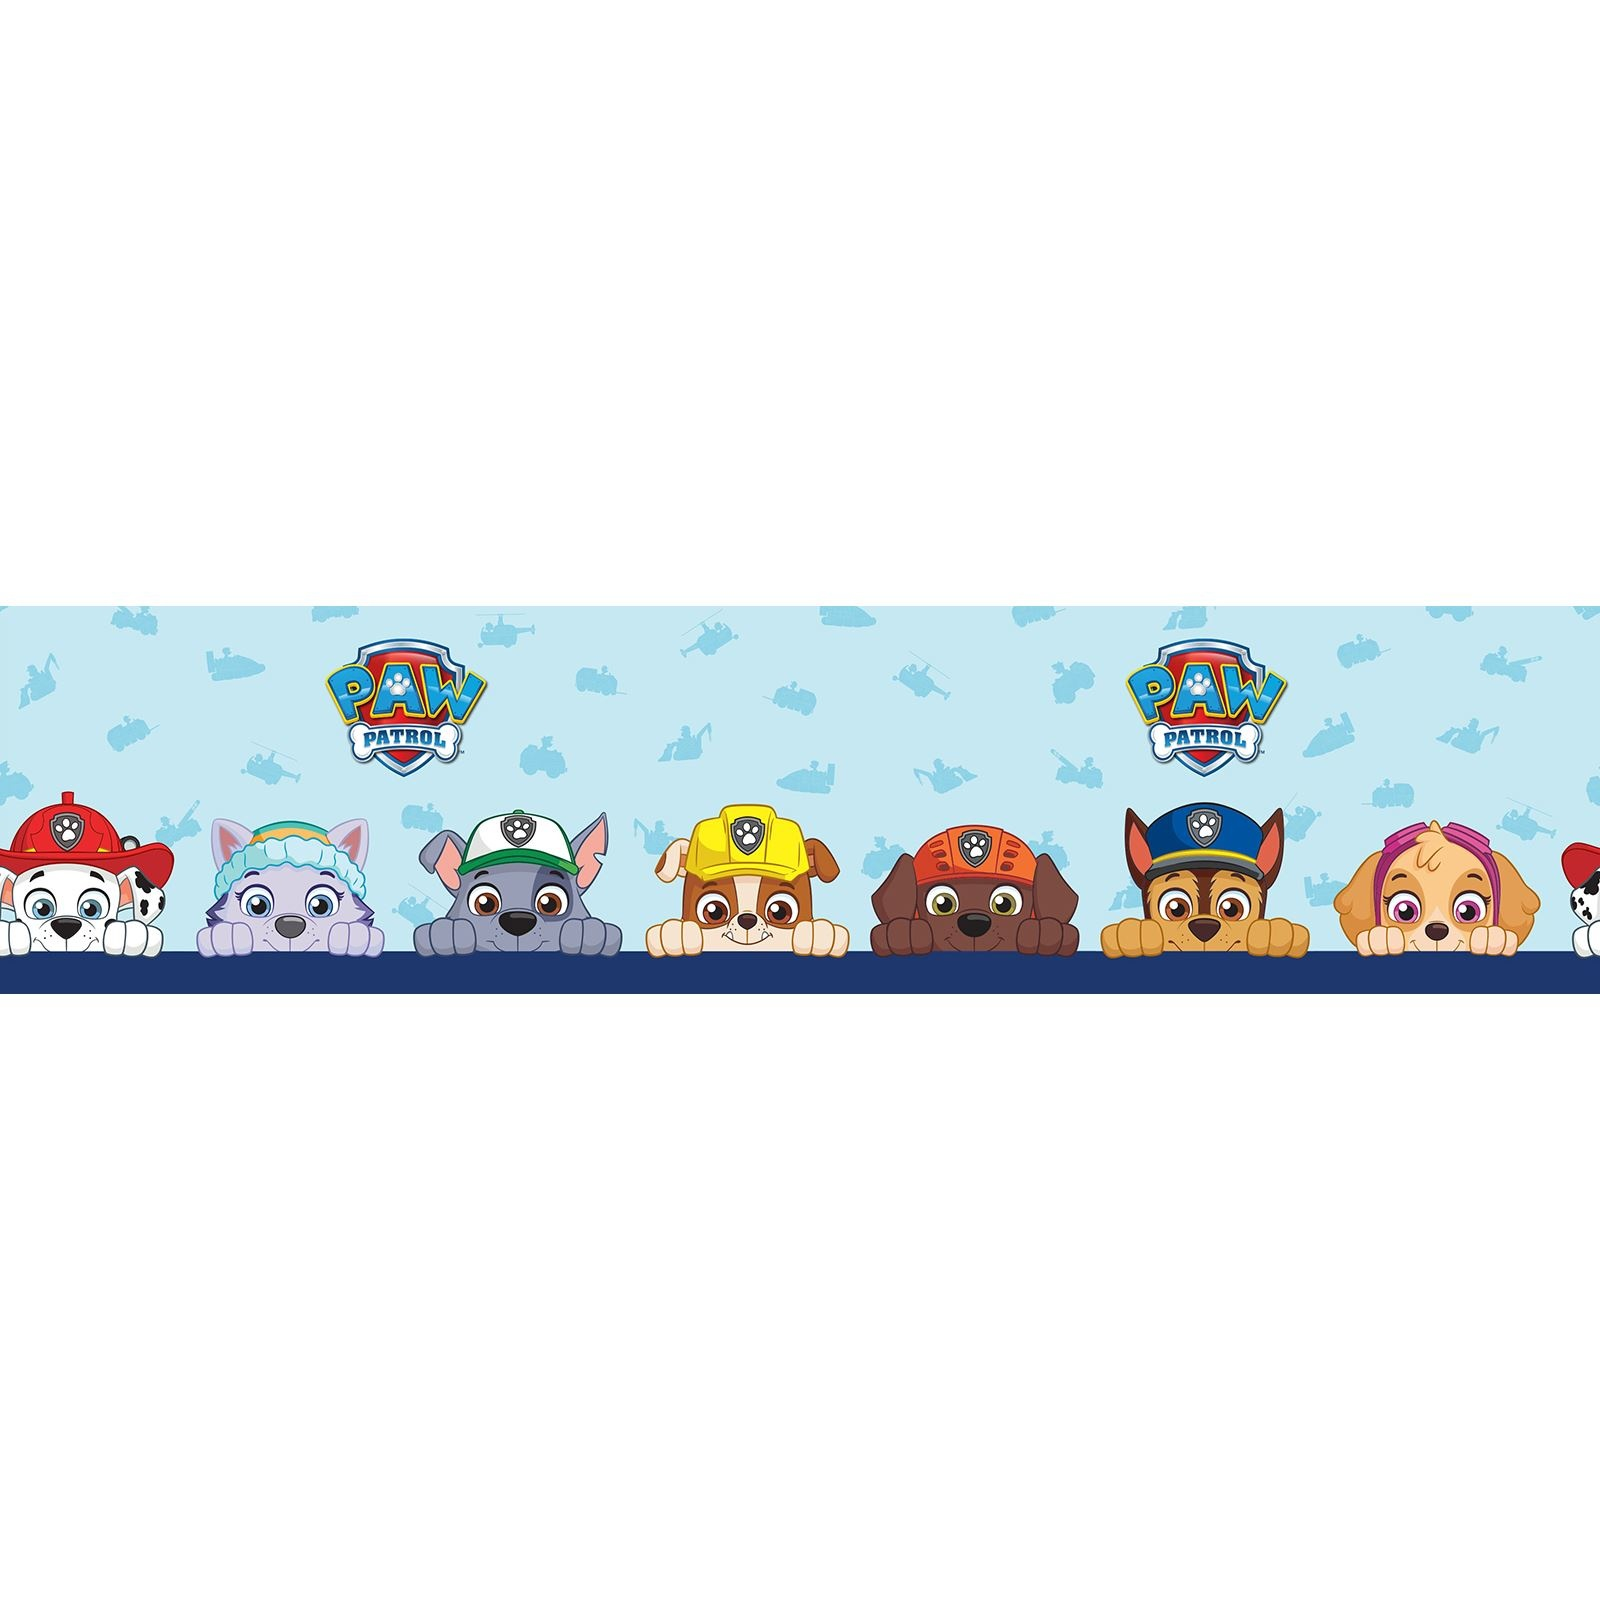 Nickelodeon Paw Patrol  Paw Patrol Wallpaper Border